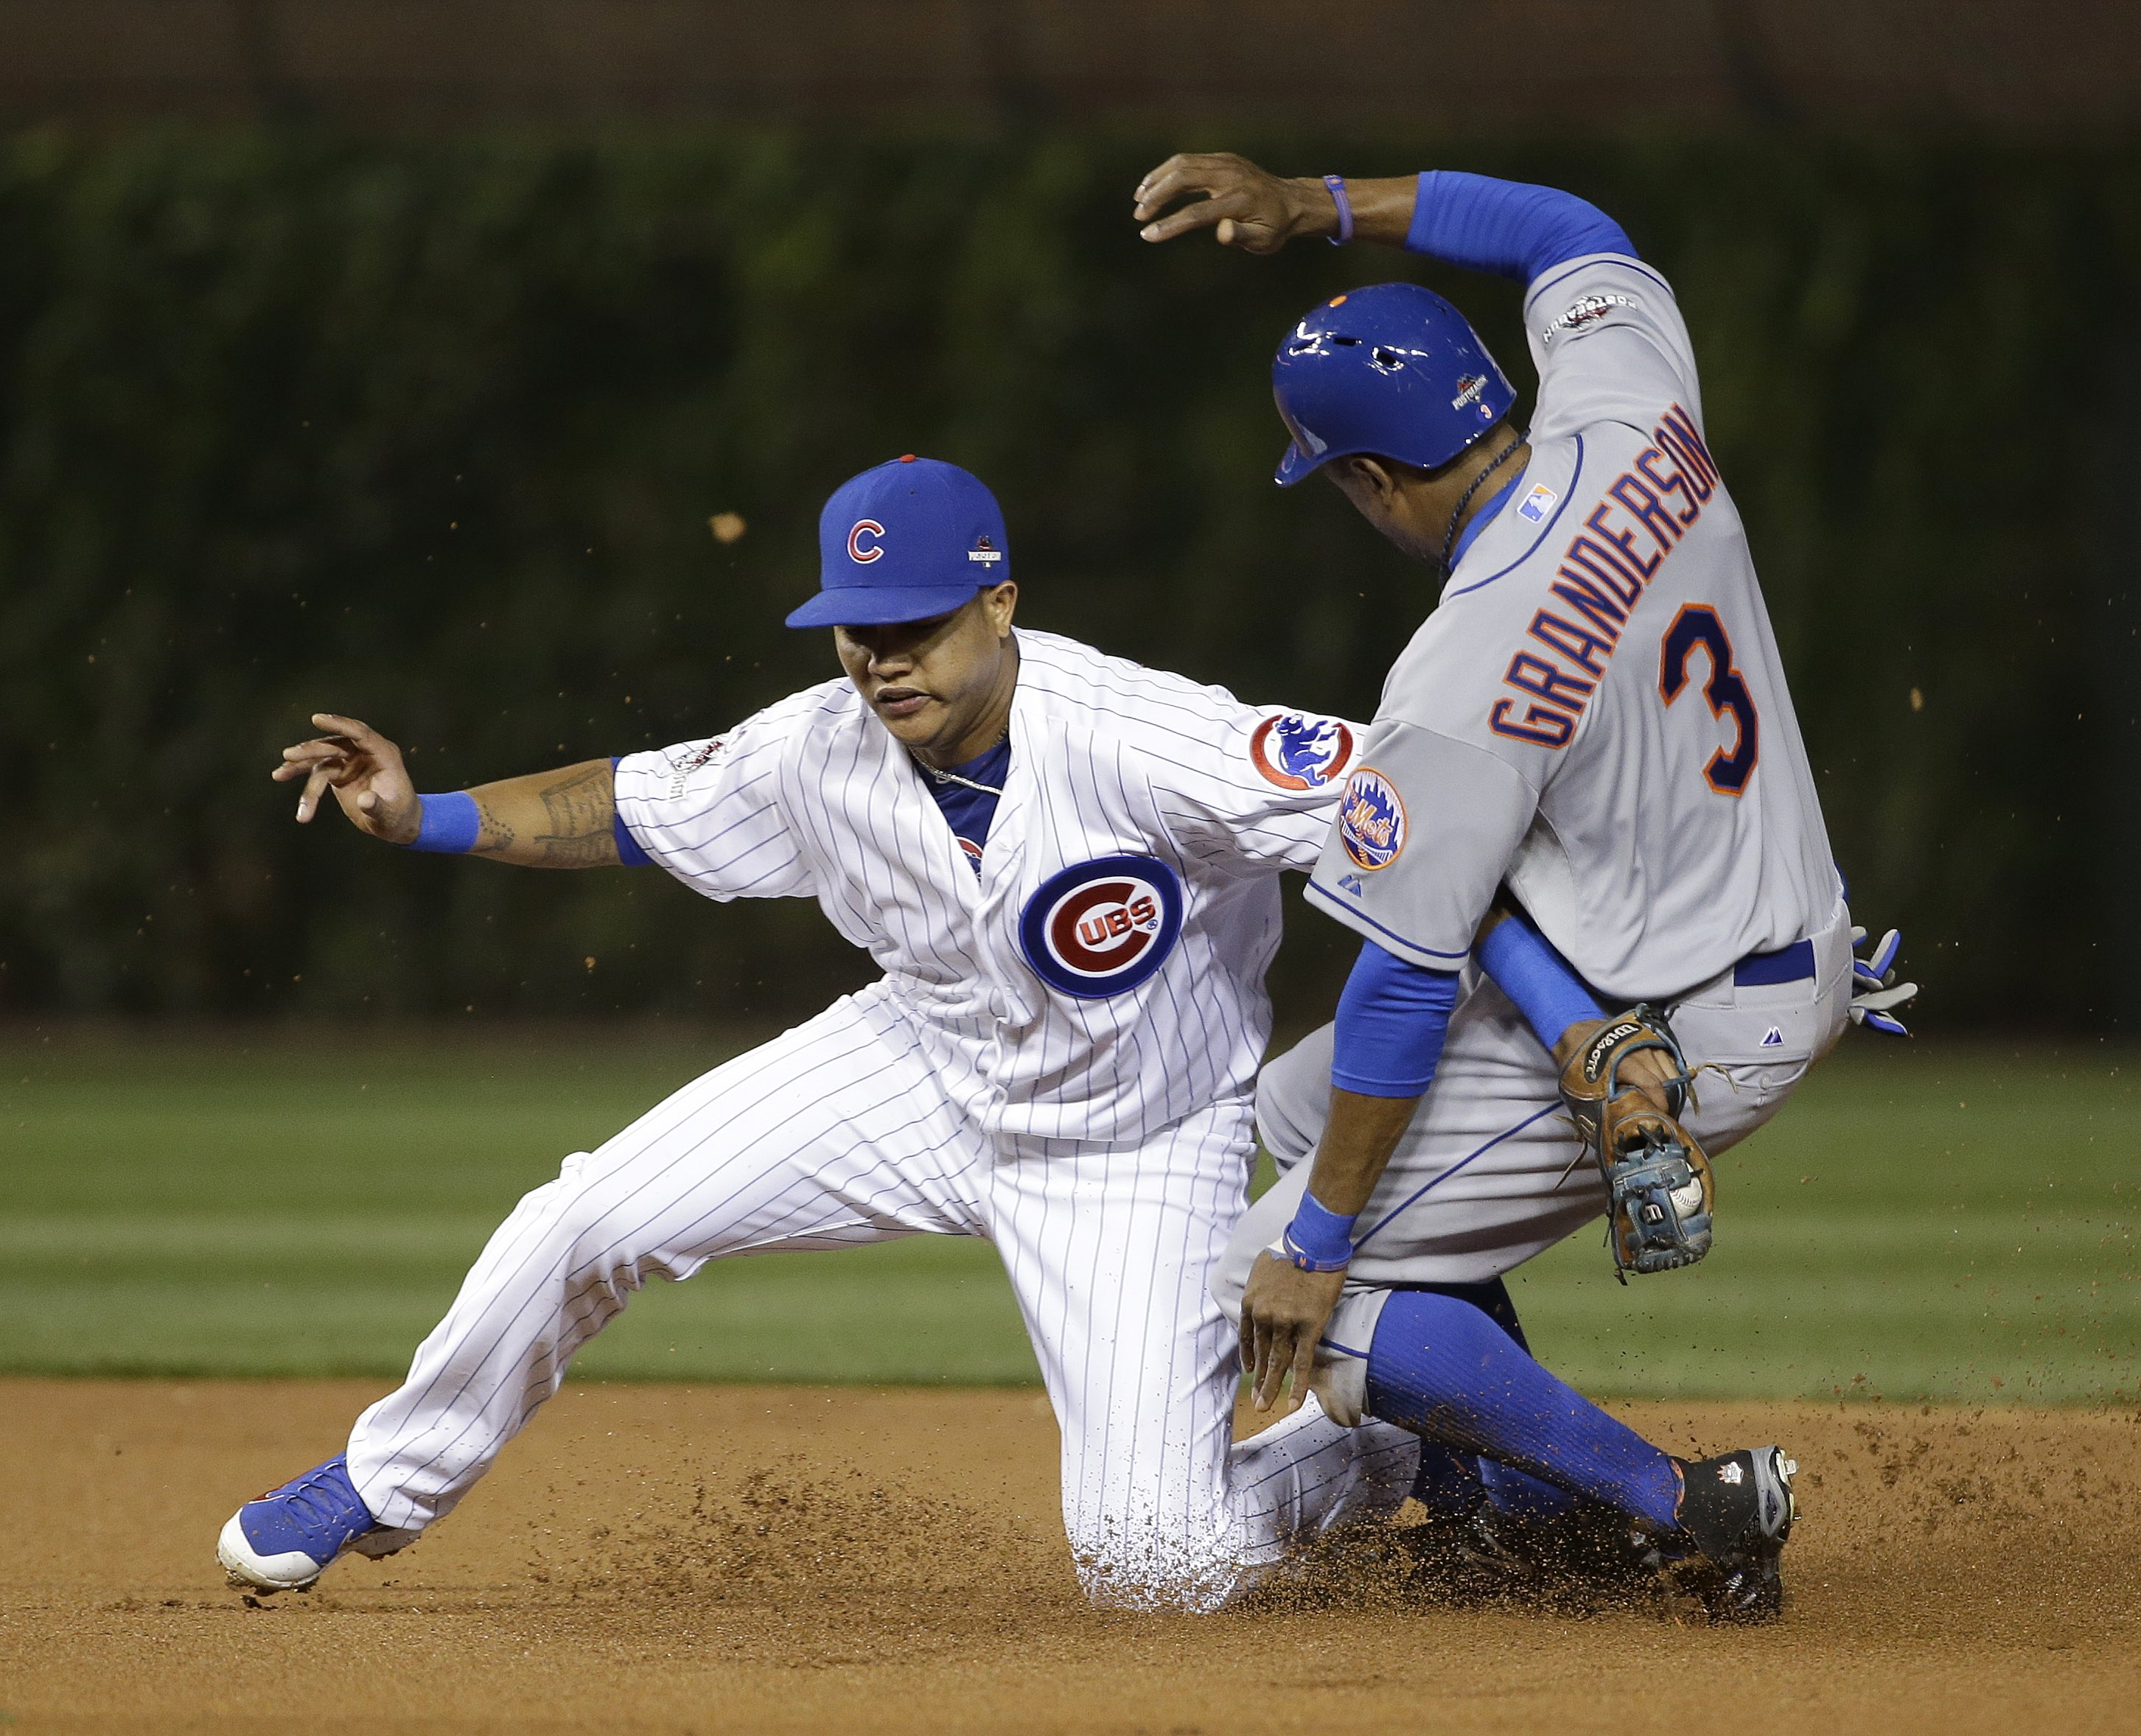 New York Mets' Curtis Granderson steals second with Chicago Cubs' Starlin Castro covering during the first inning of Game 4 of the National League baseball championship series Wednesday, Oct. 21, 2015, in Chicago. (AP Photo/David J. Phillip)